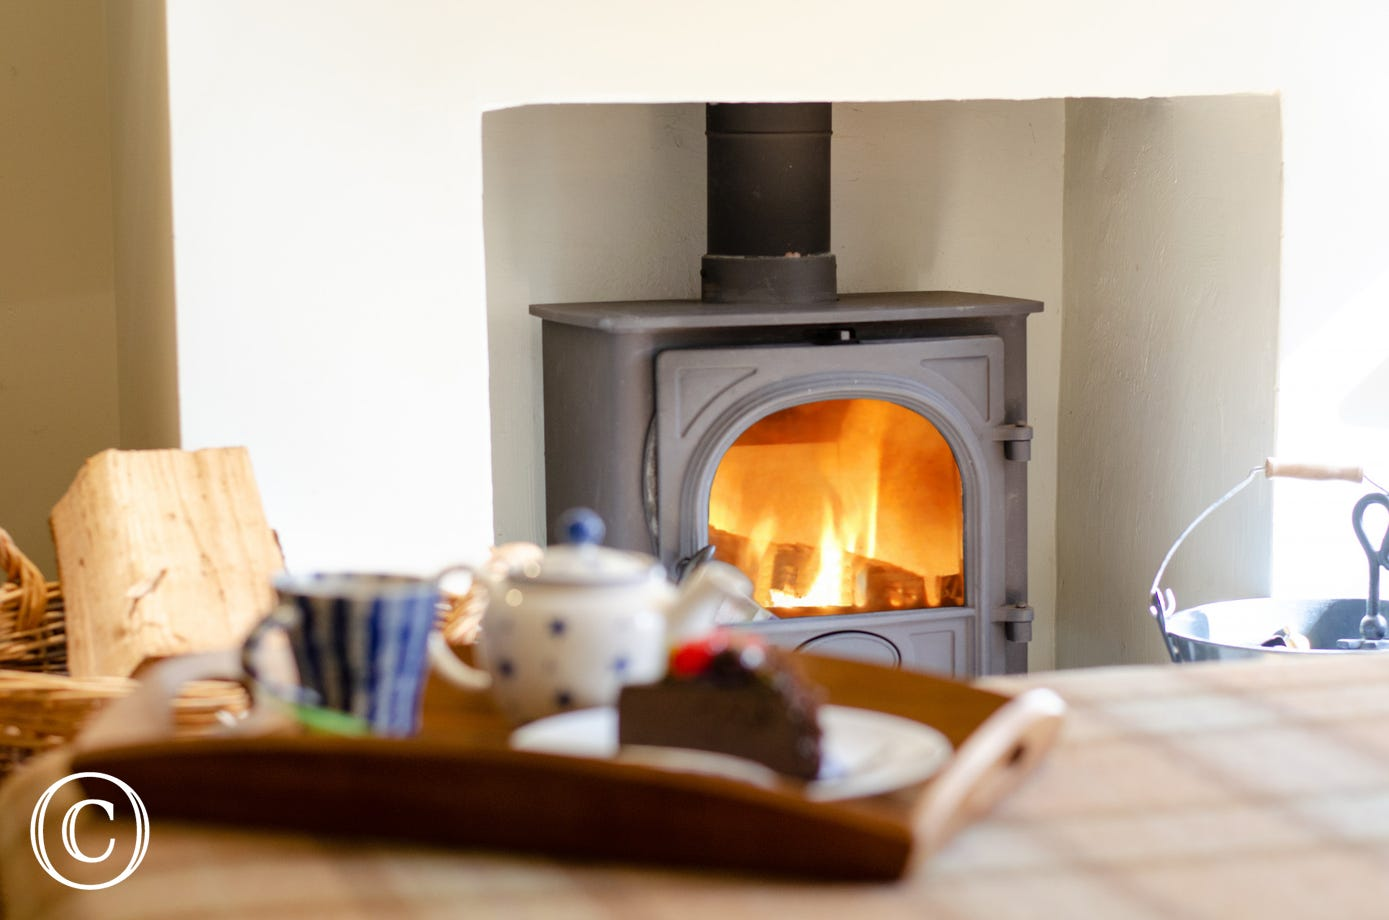 Woodburner stove in sitting room